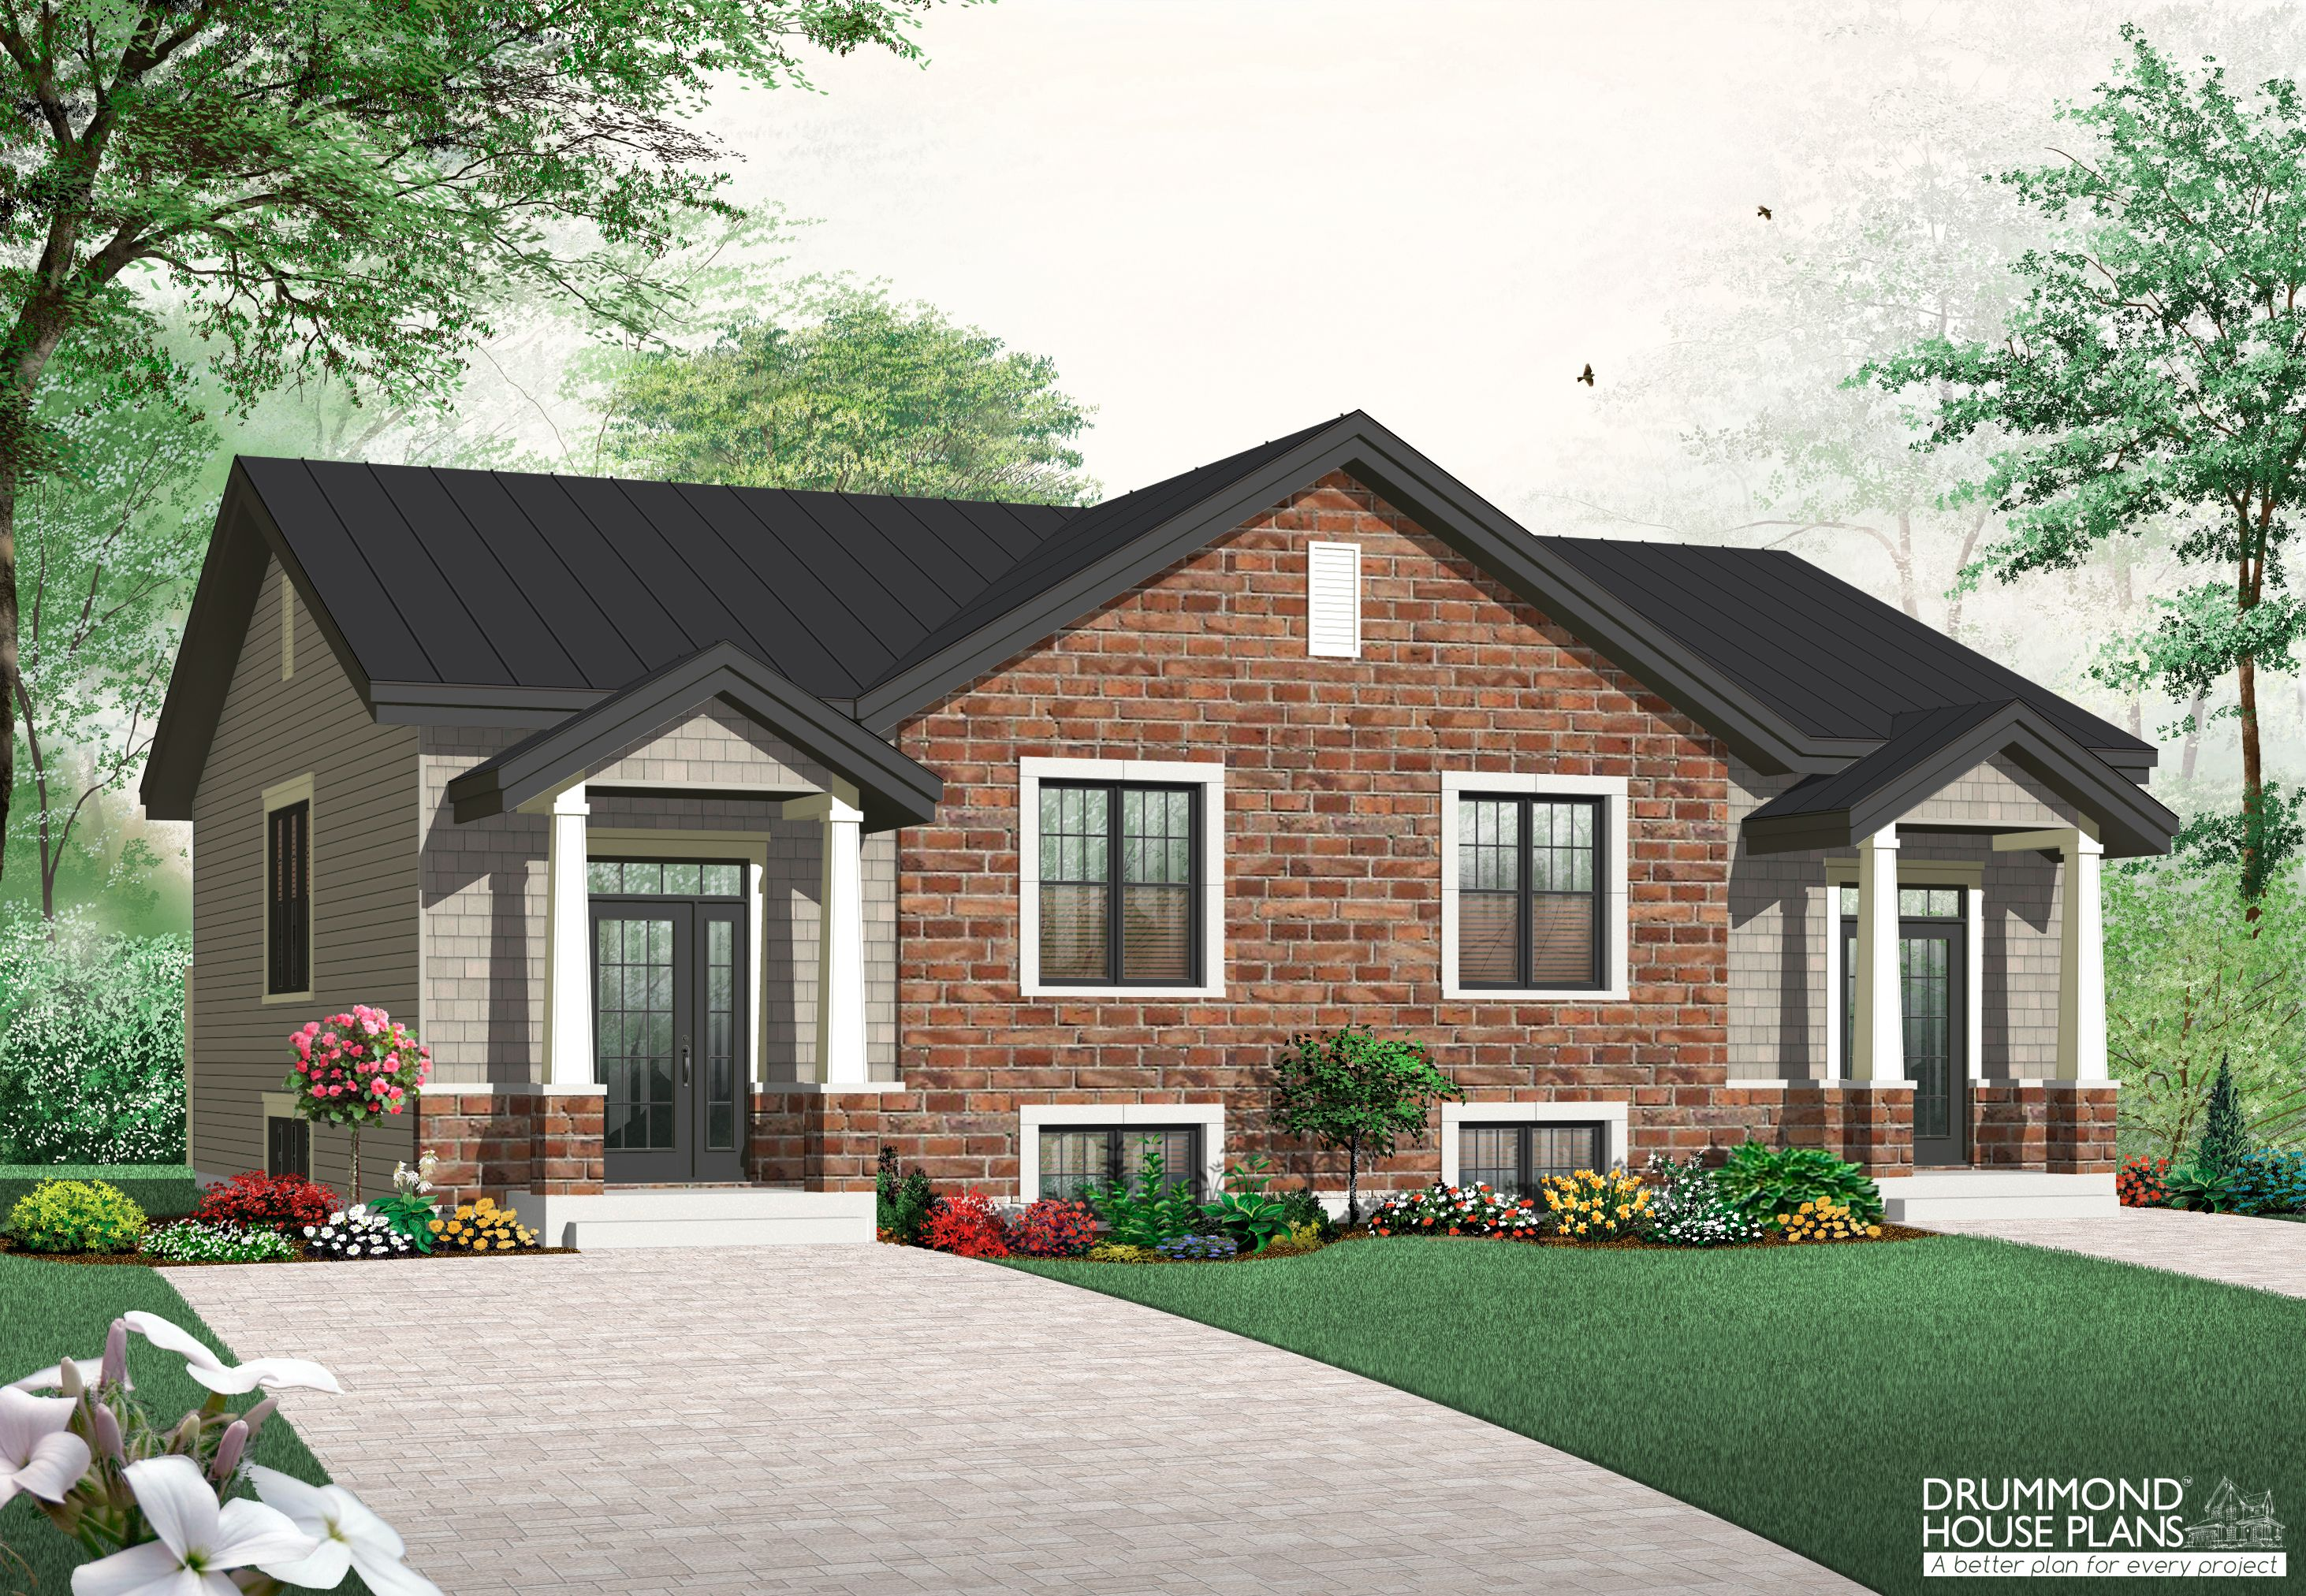 classic modern elegant semi detached 6 bedroom semi on small modern home plans design for financial savings id=92986